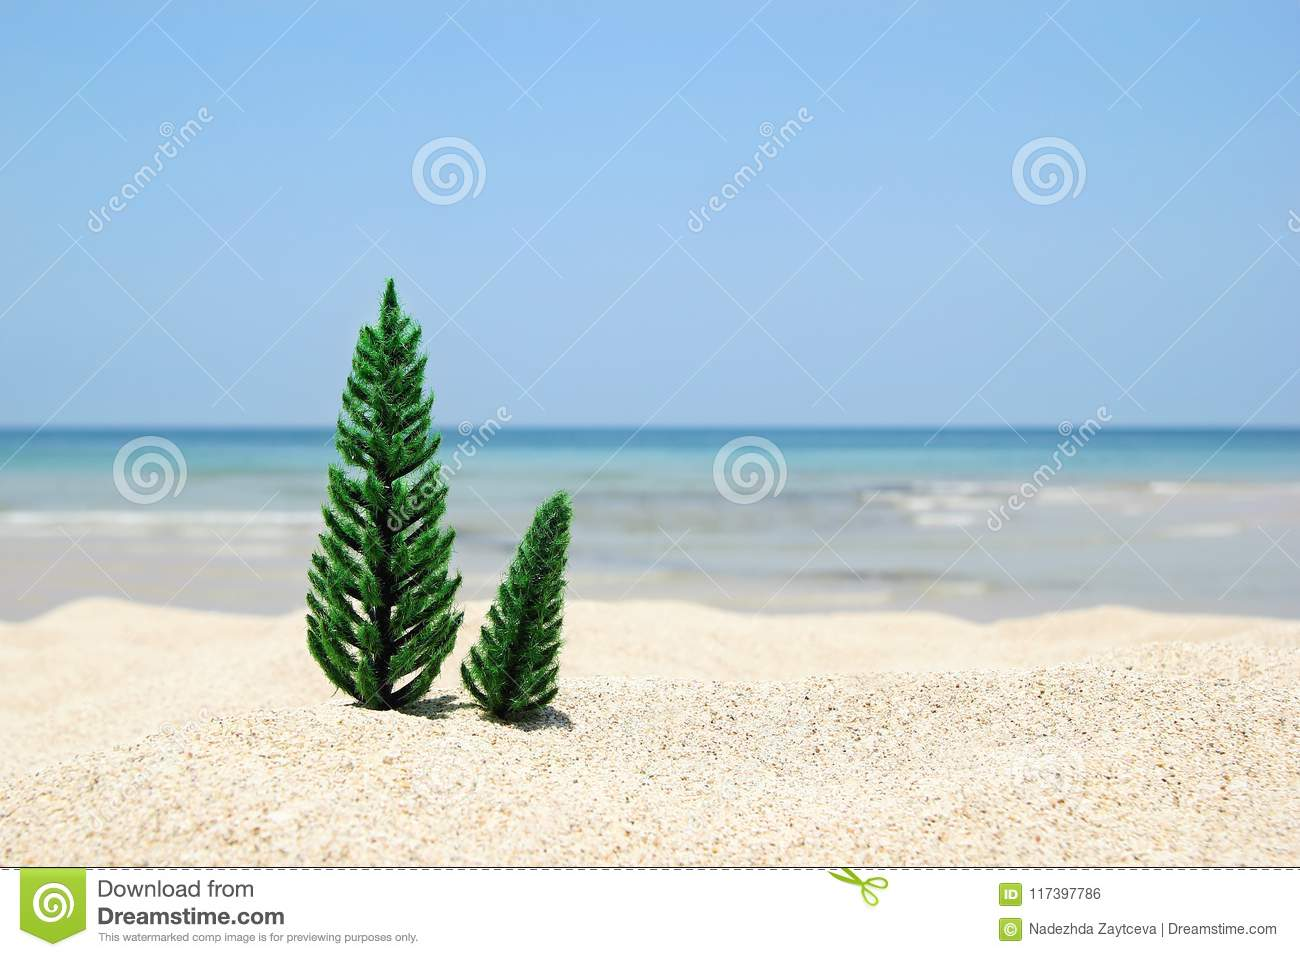 Two Christmas trees on the white sand beach on the background of blue sea and sky on a sunny day.